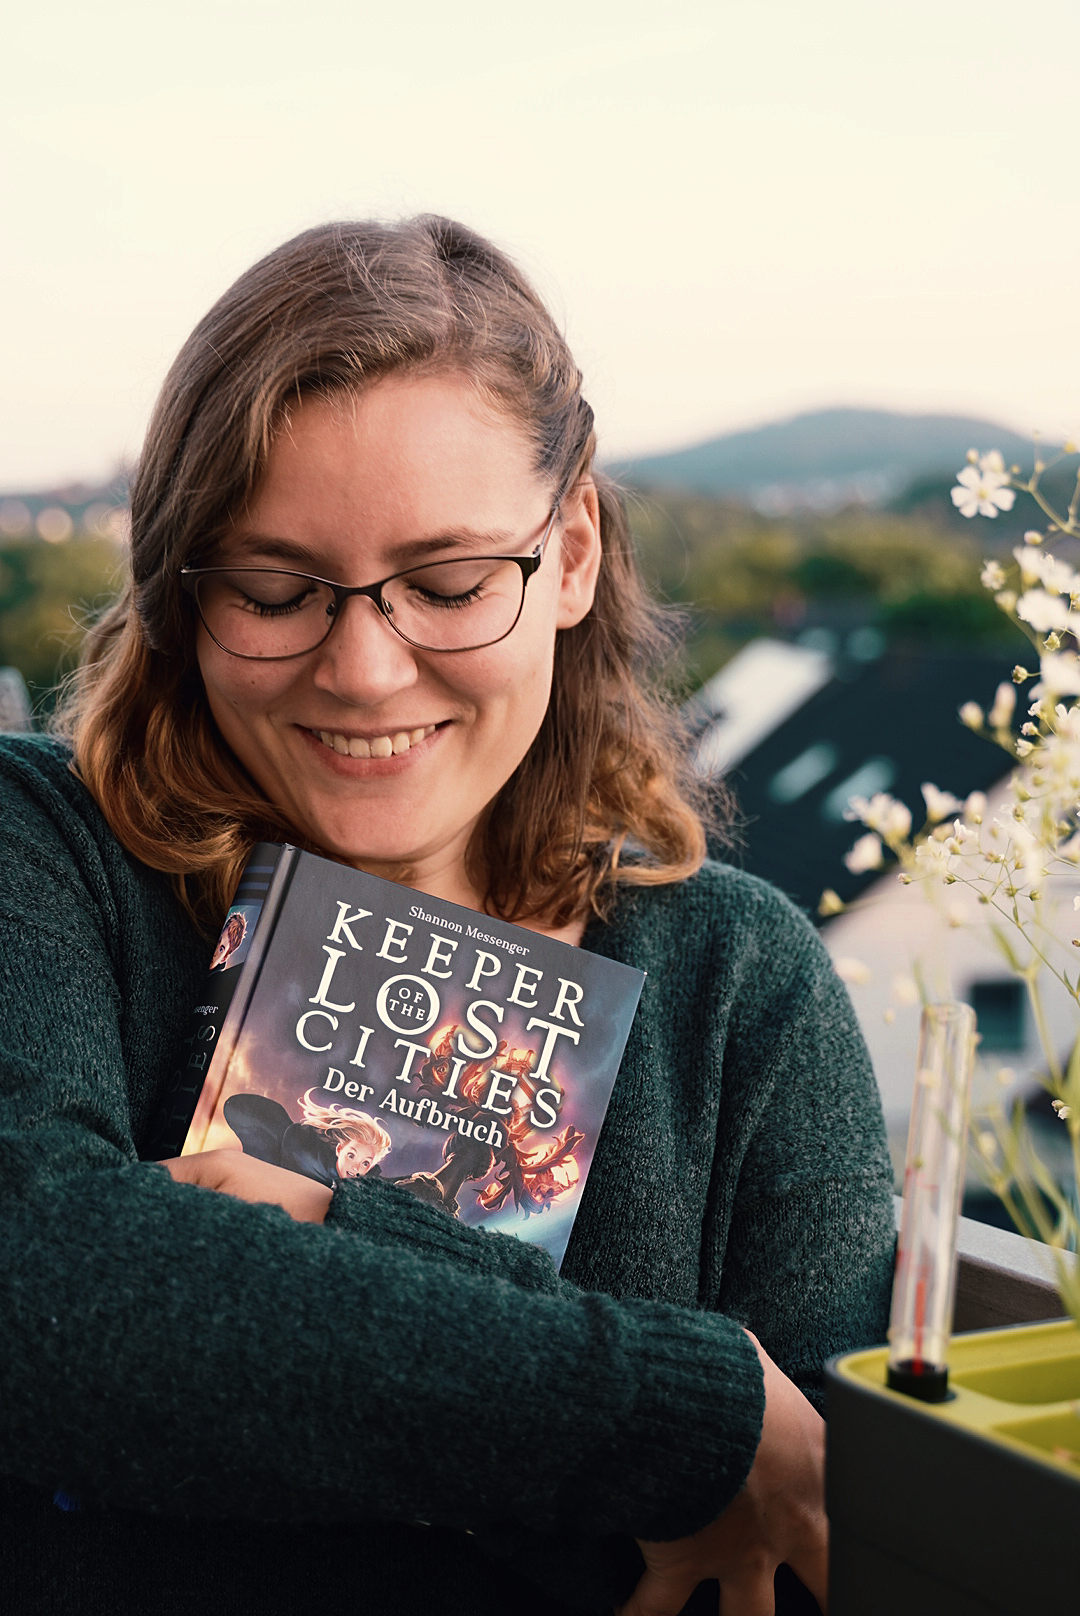 Keeper of the lost cities: Der Aufbruch – Shannon Messenger